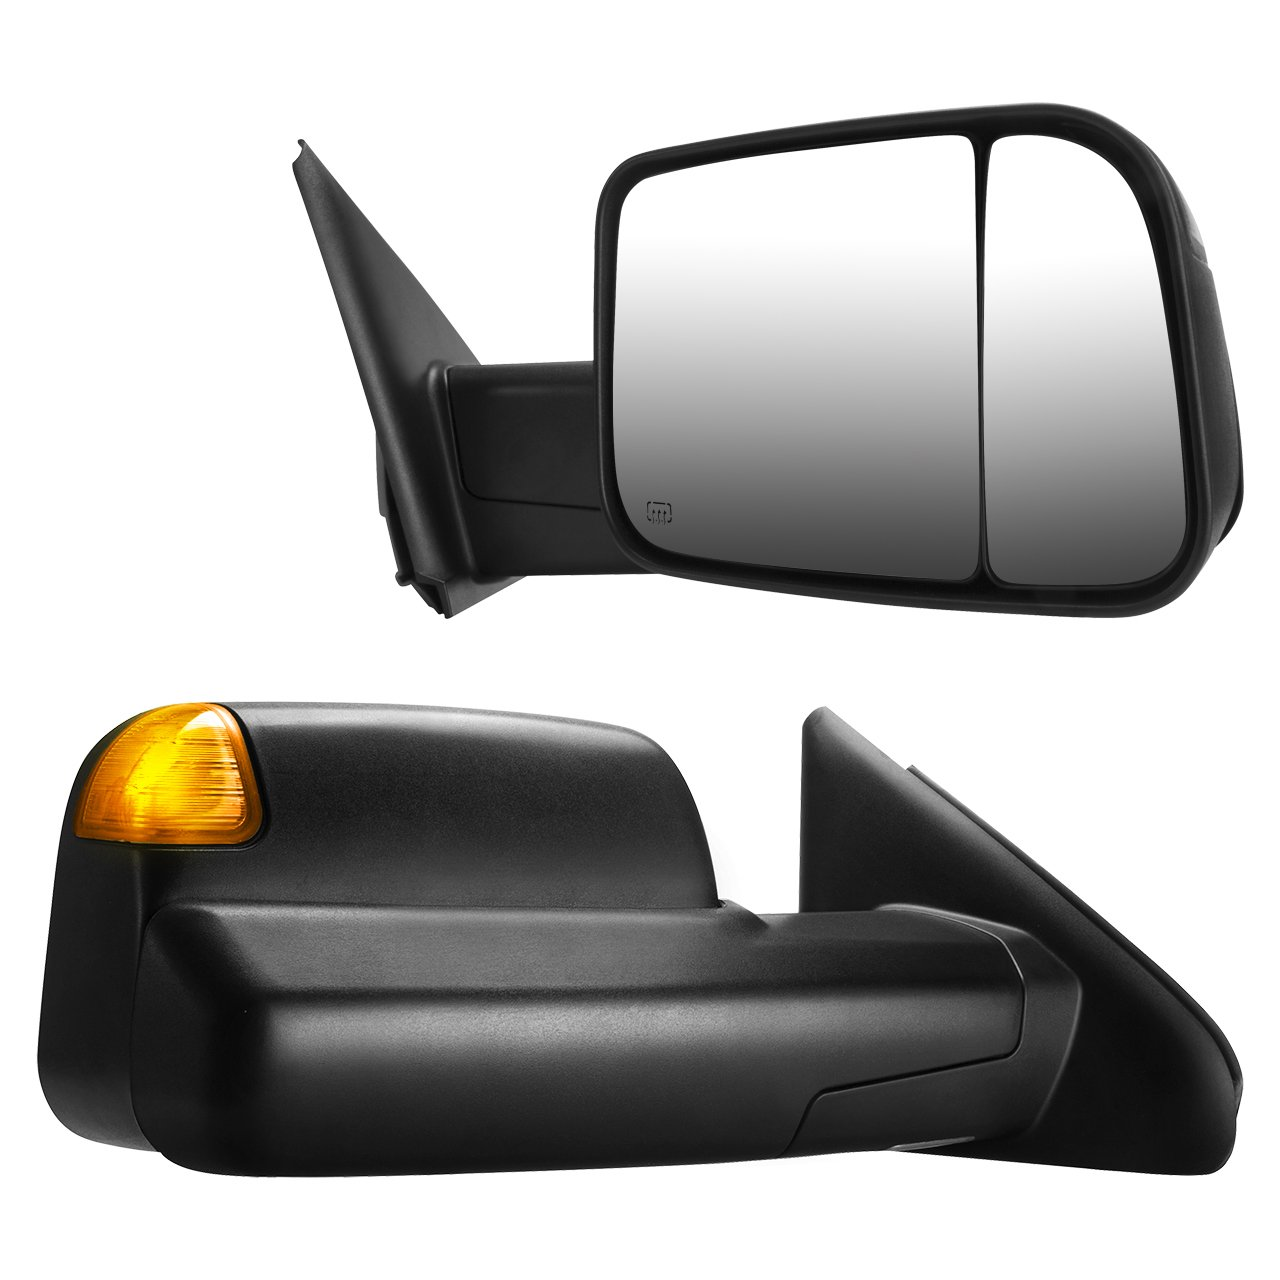 DEDC Dodge Ram Tow Mirrors For Dodge Ram 2002-2009 Dodge Ram 1500 2500 3500 Power Heated With Signal Light Puddle Light